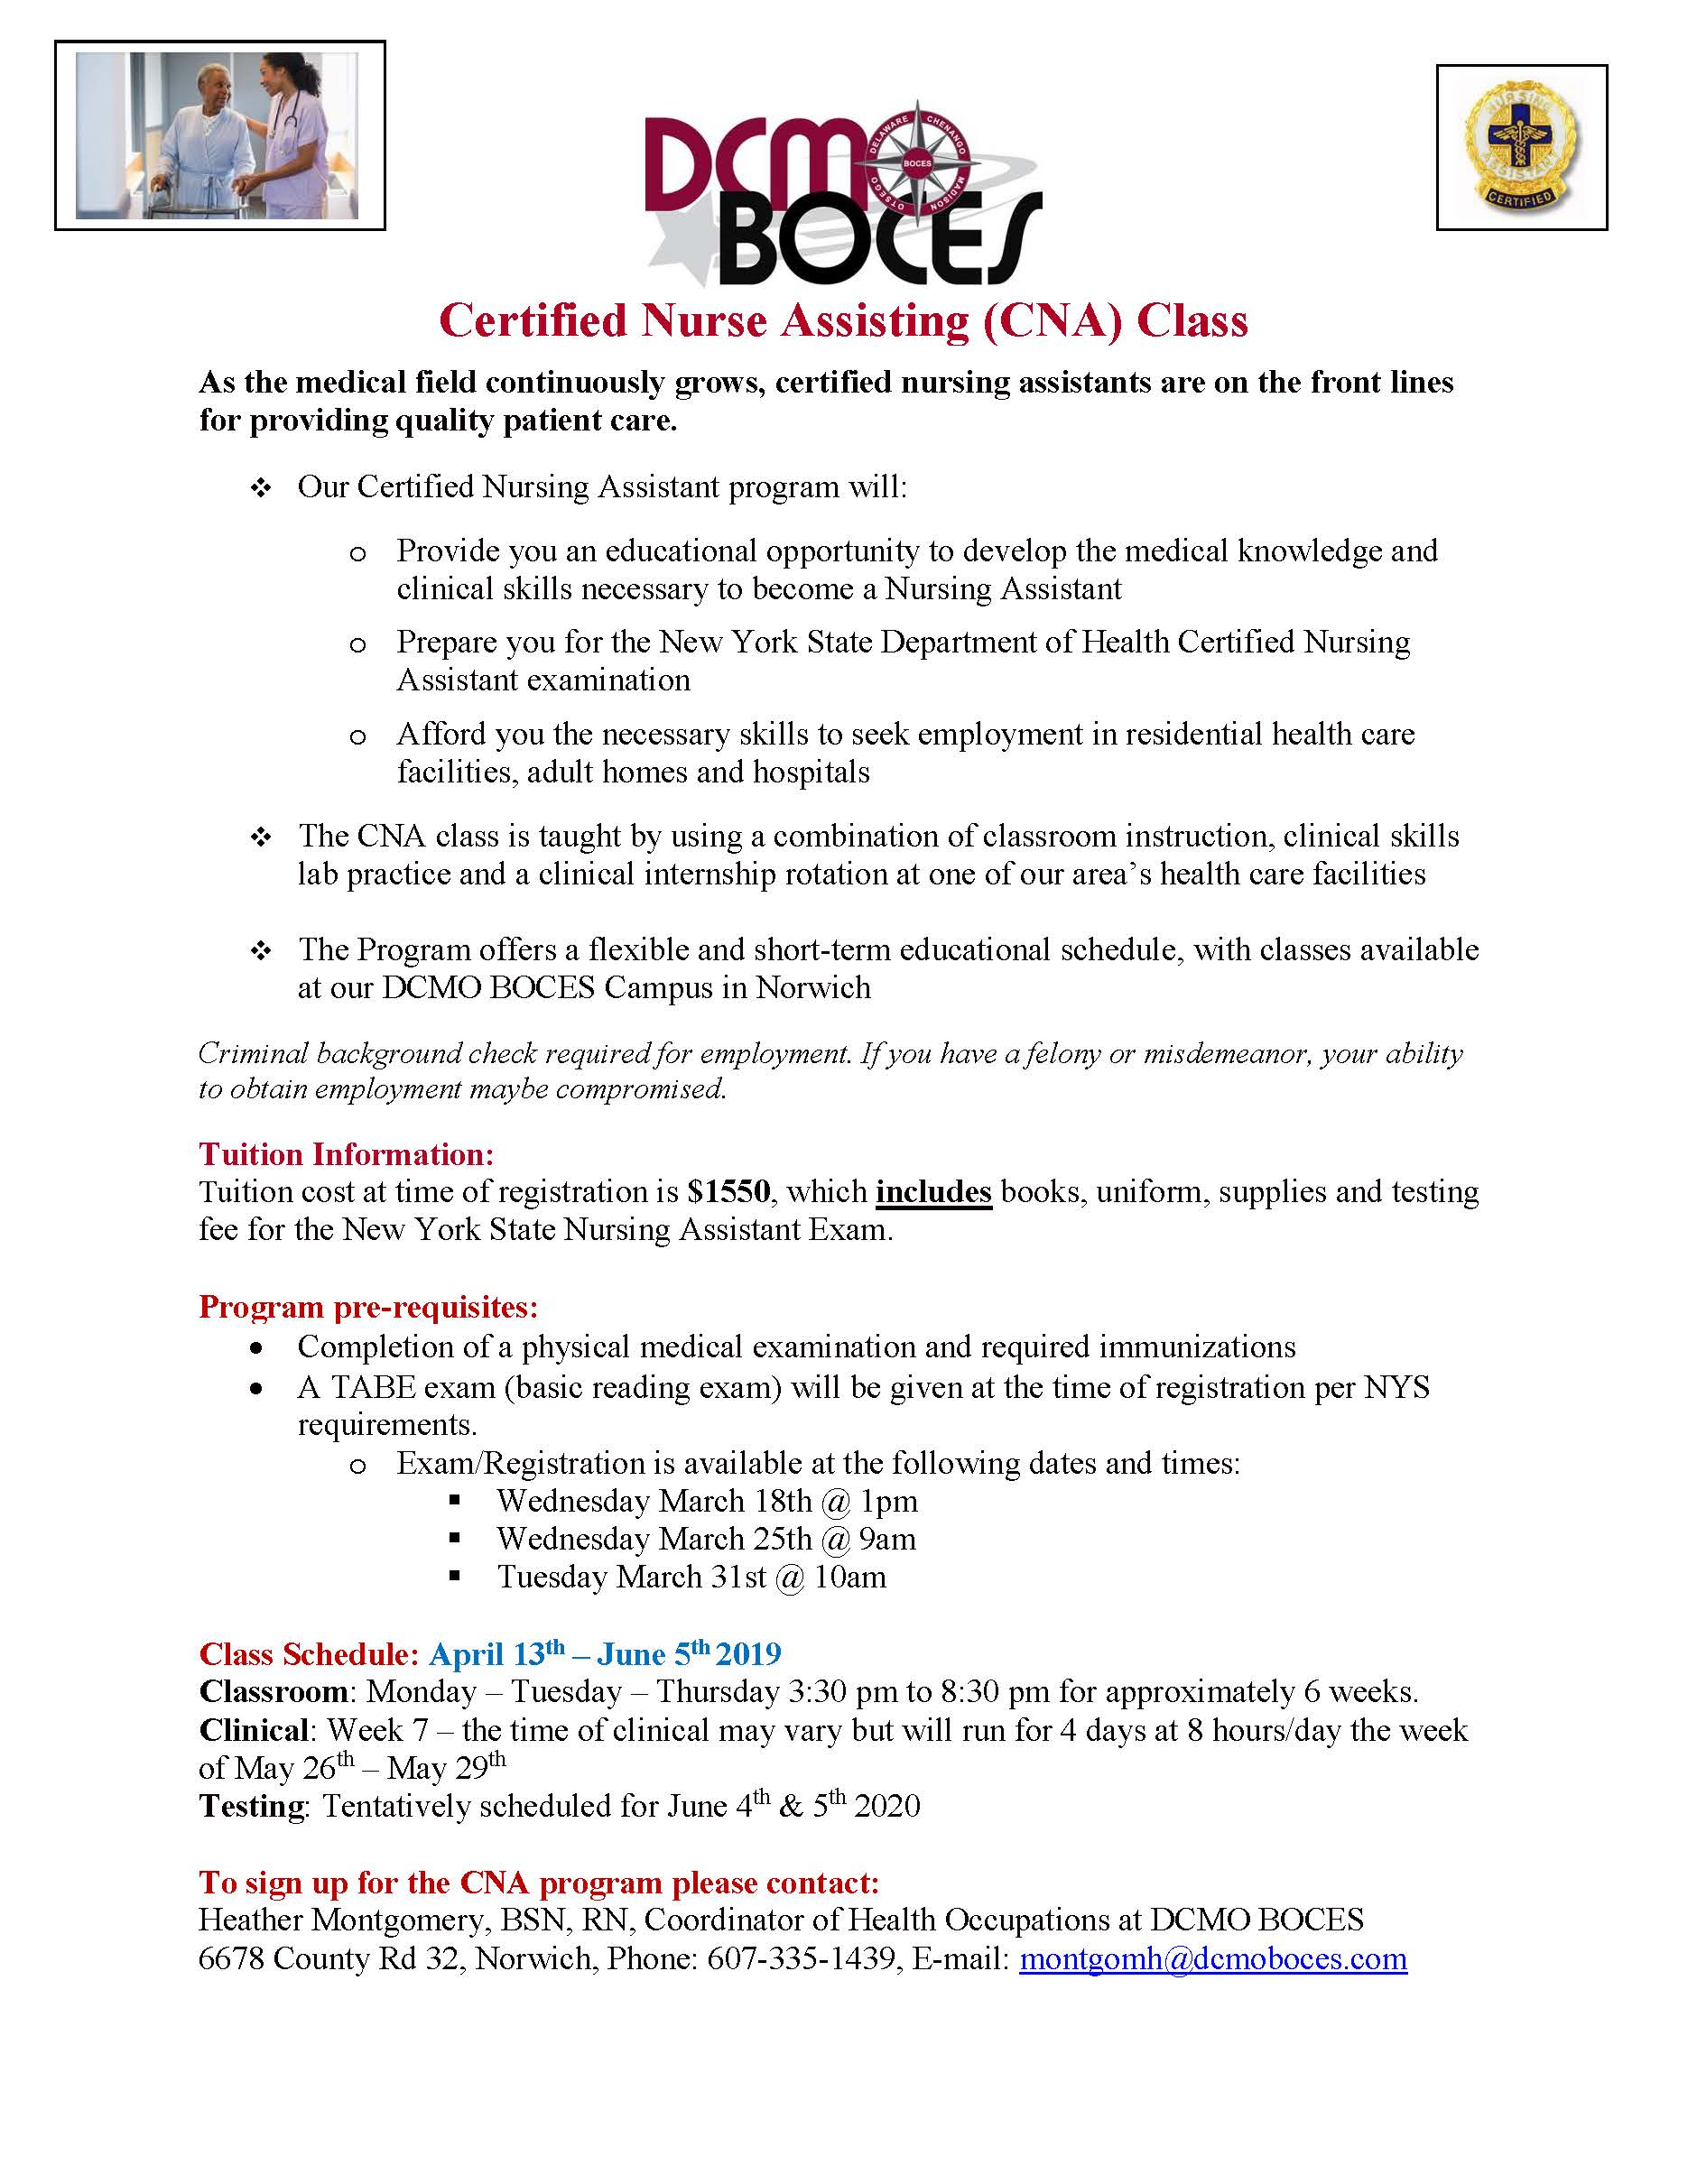 Certified Nurse Assisting Class April 2020